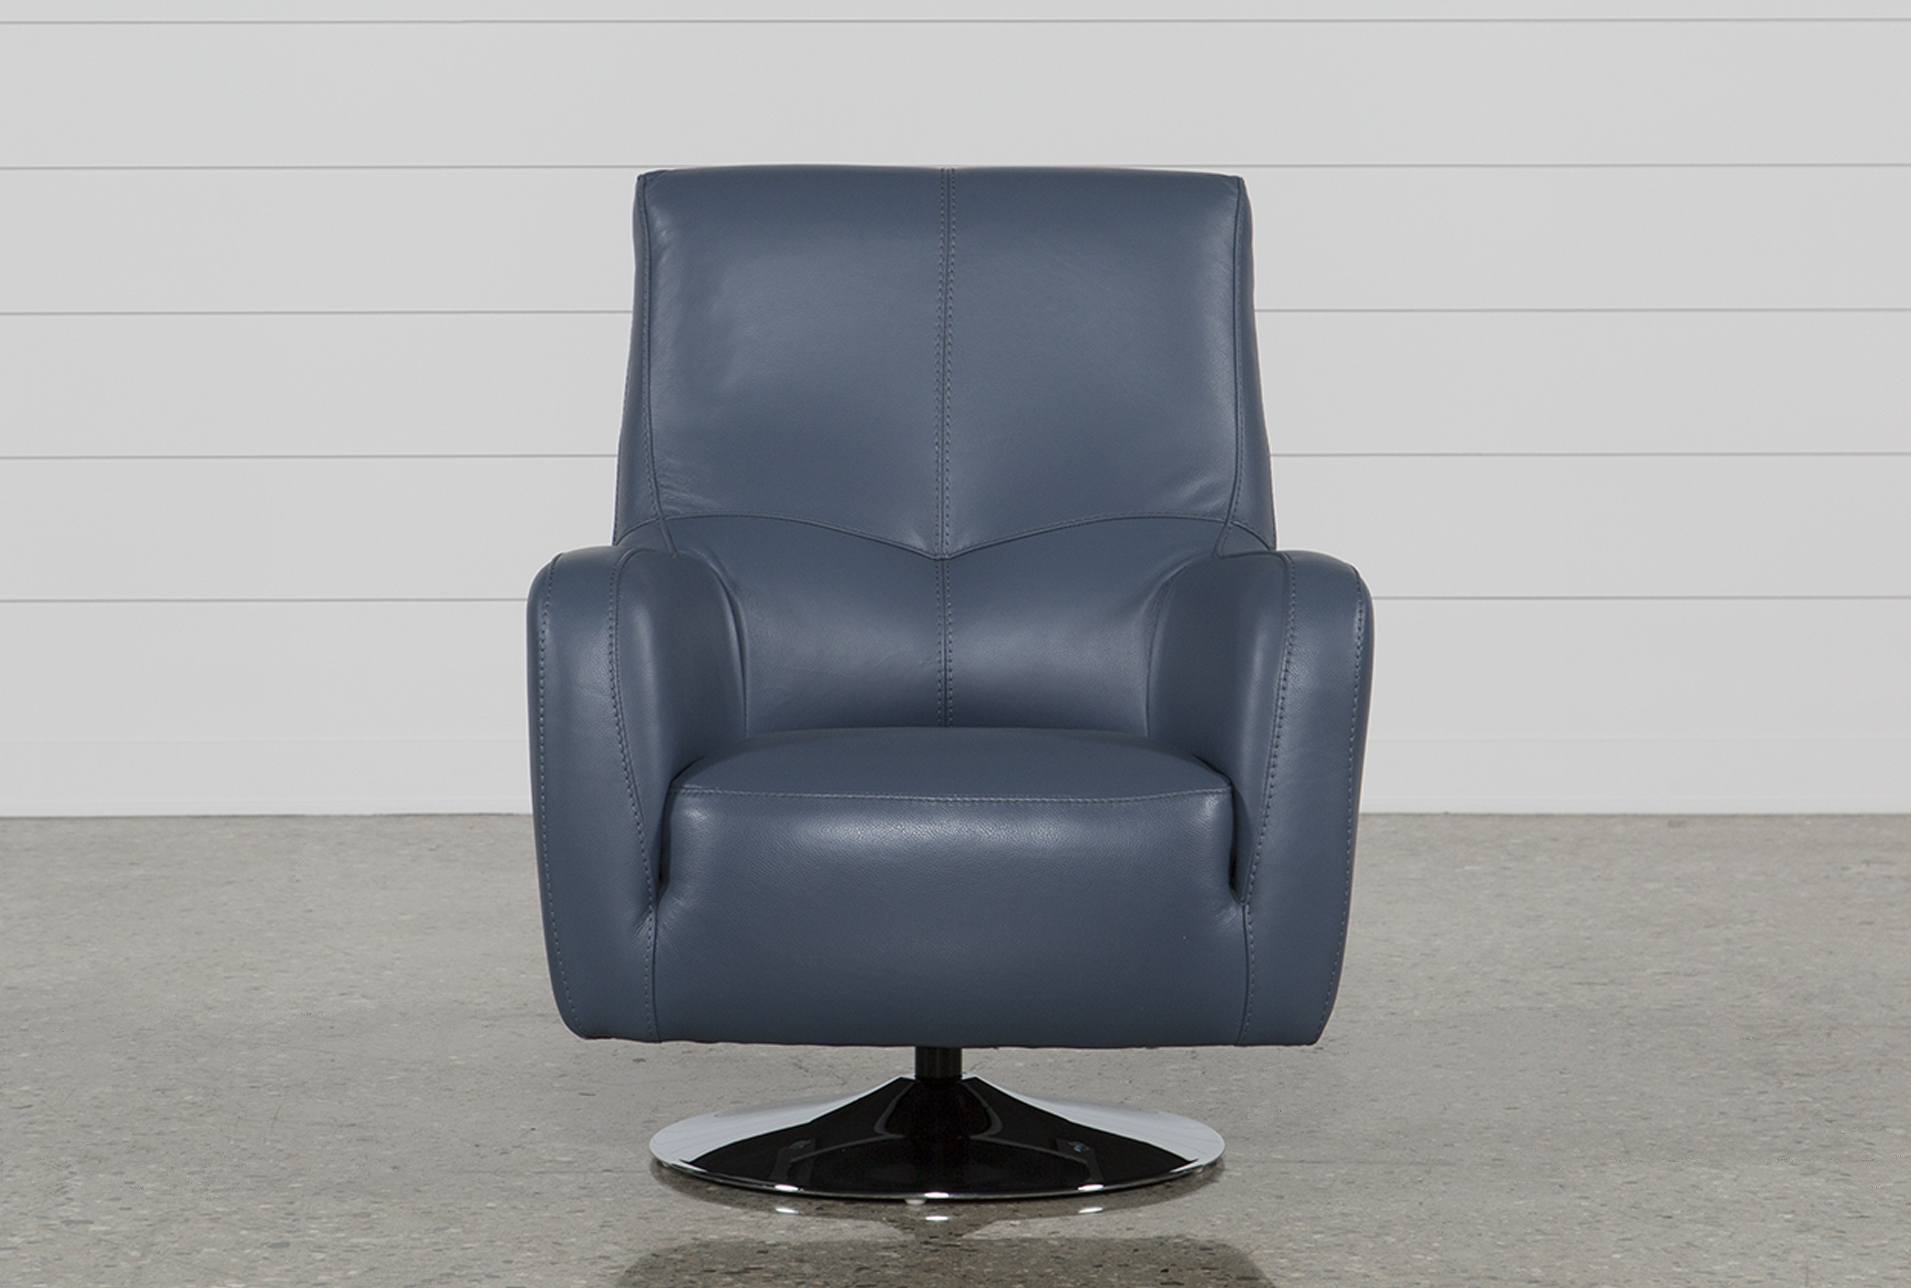 Kawai Leather Swivel Chair | Products | Pinterest | Leather Swivel In Kawai Leather Swivel Chairs (View 2 of 20)